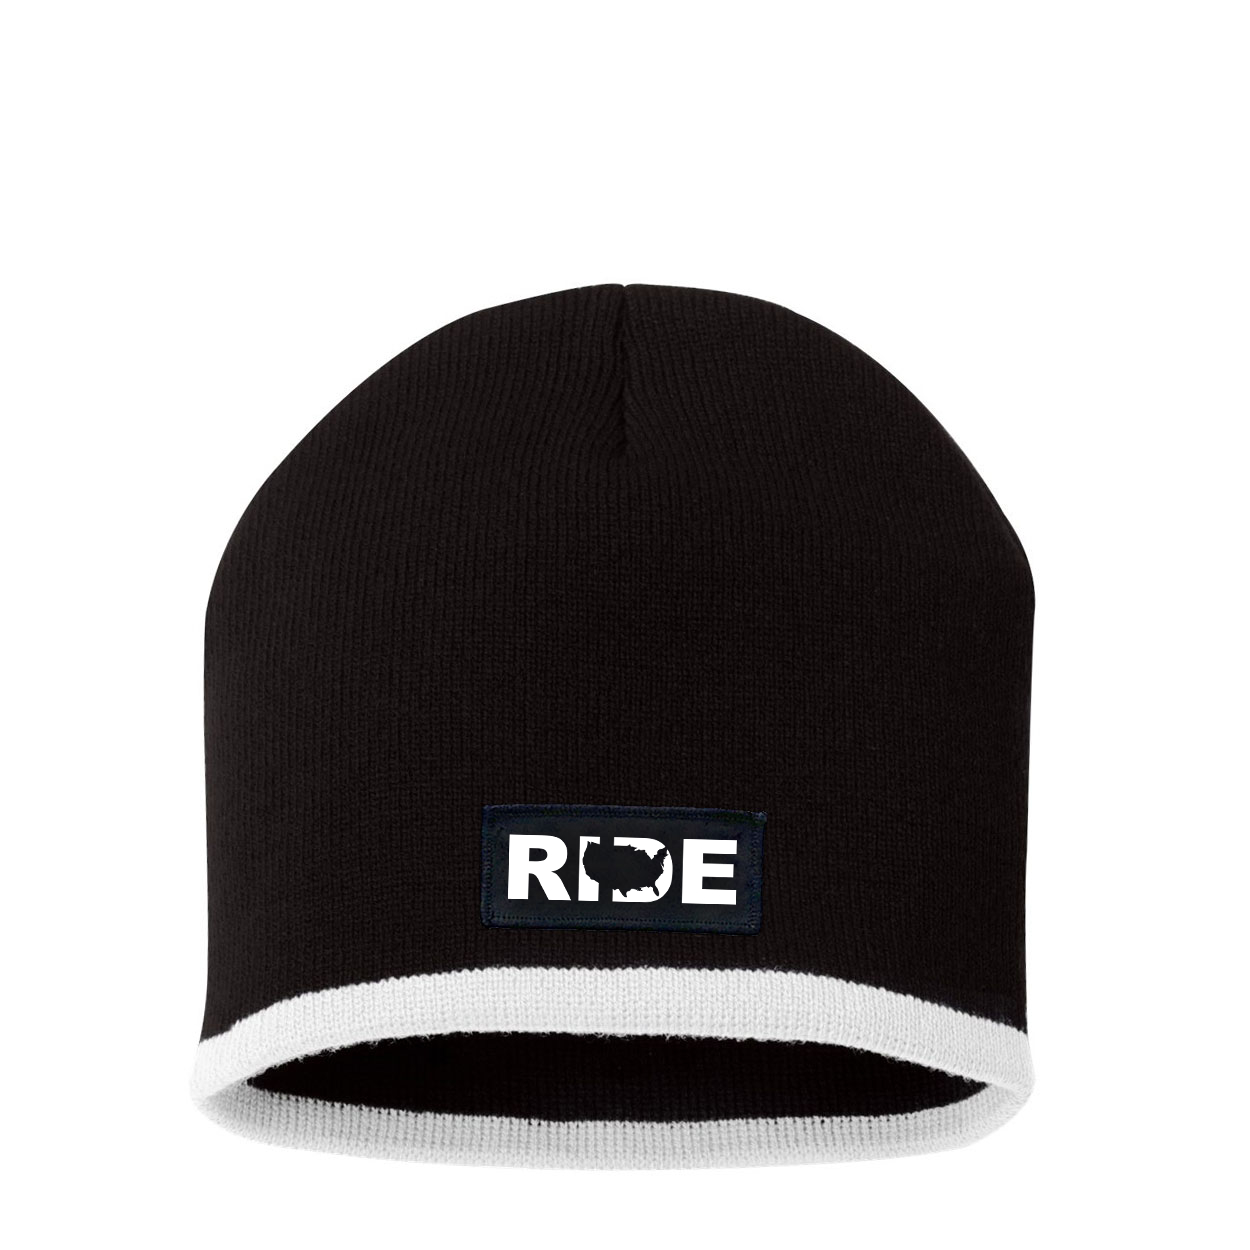 Ride United States Night Out Woven Patch Skully Beanie Black/White (White Logo)